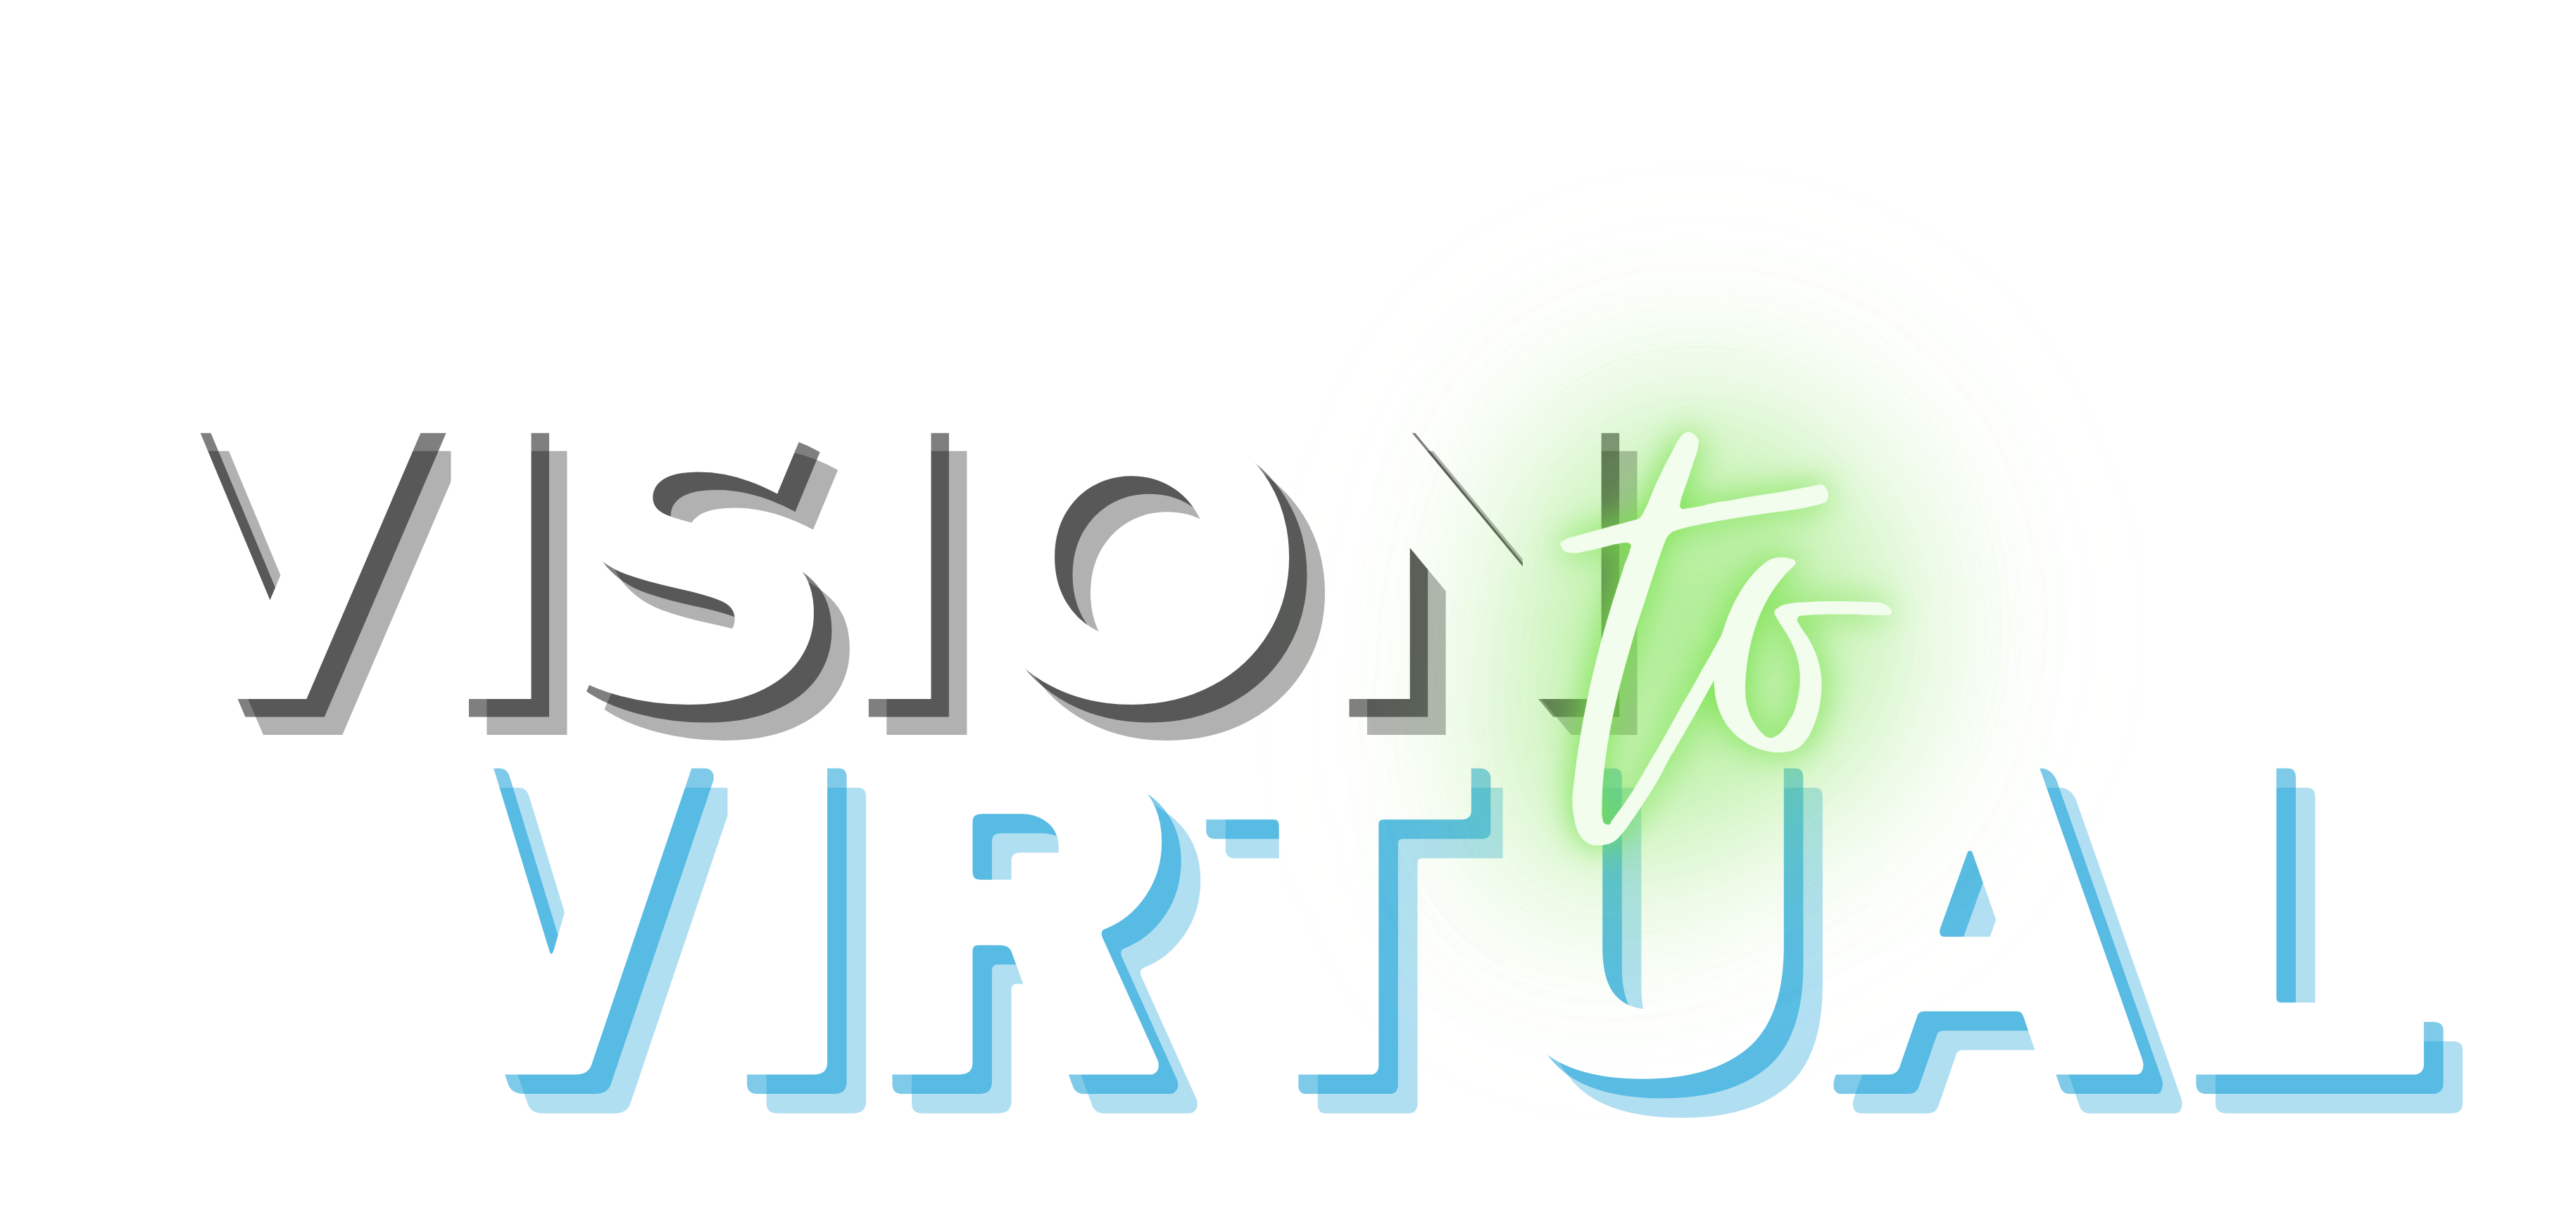 HRS Vision to Virtual Logo